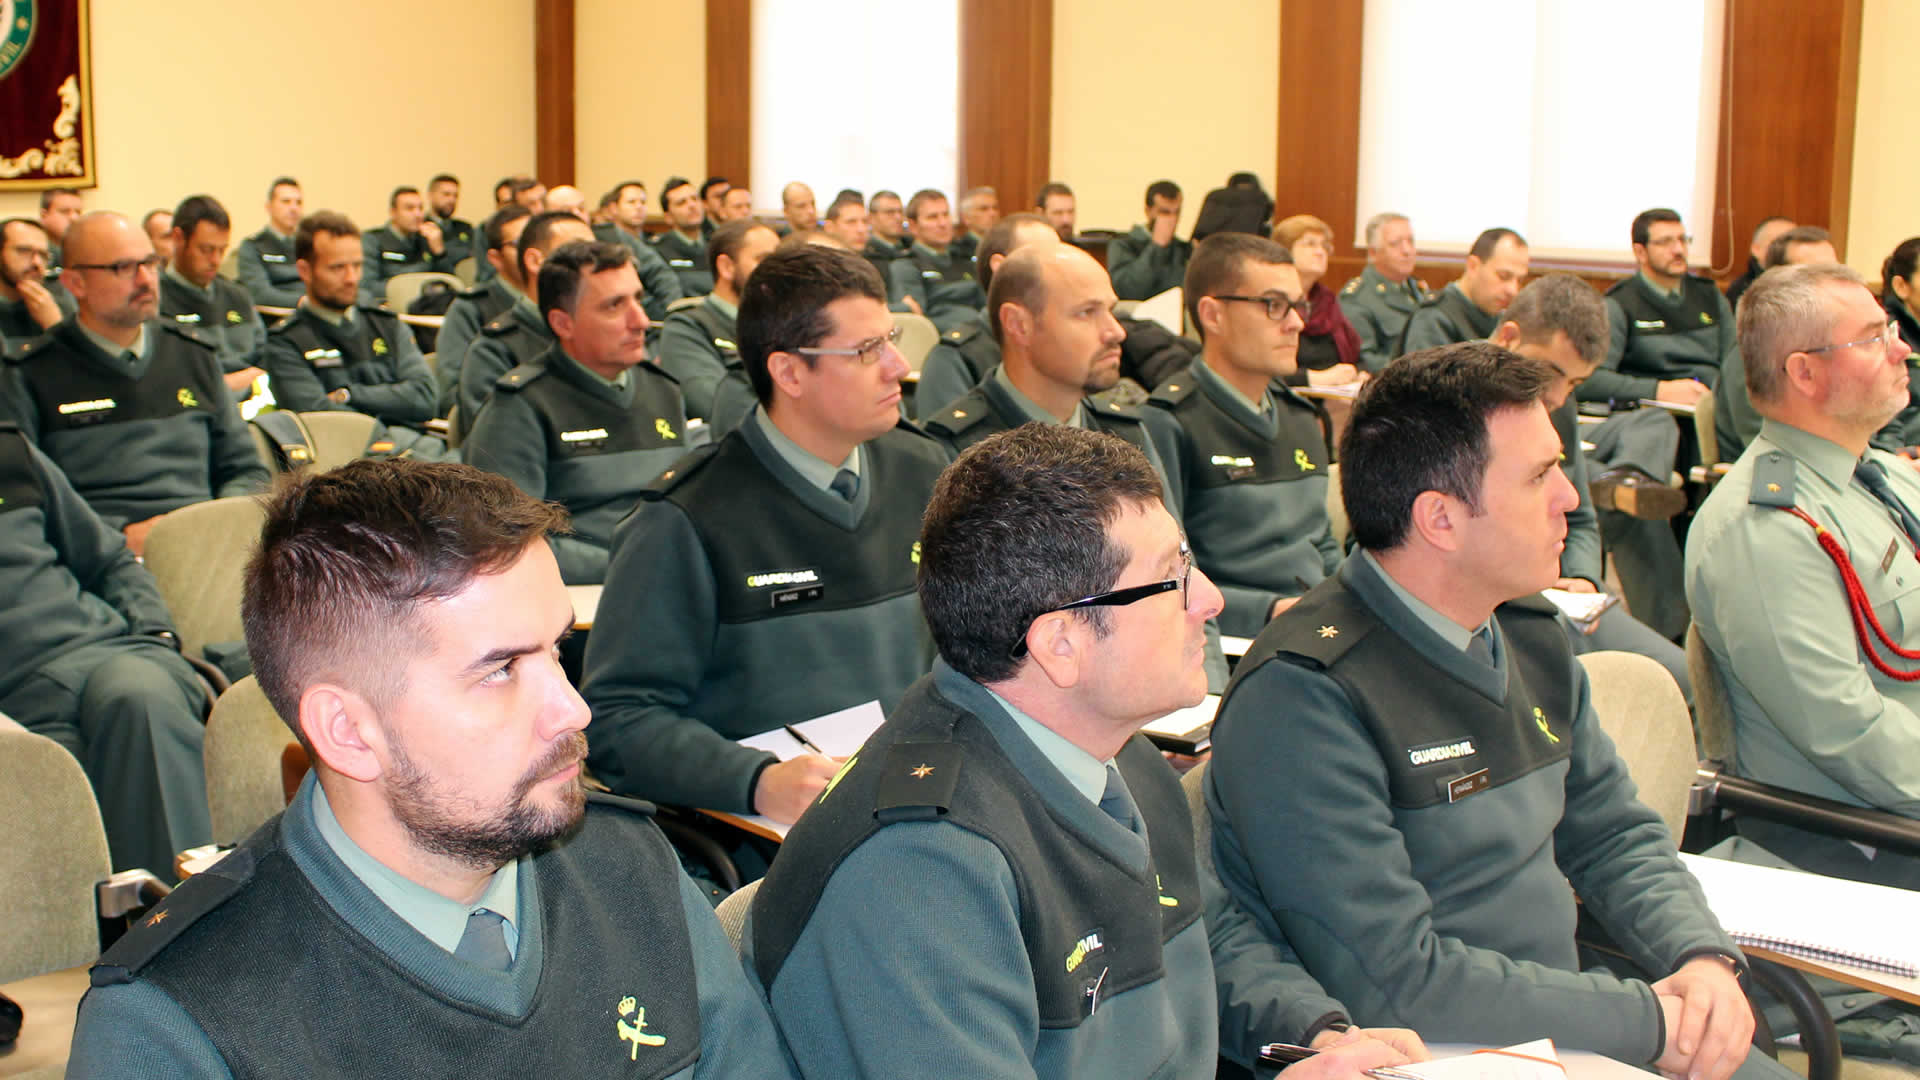 Conferencias riesgos y amenazas a la seguridad